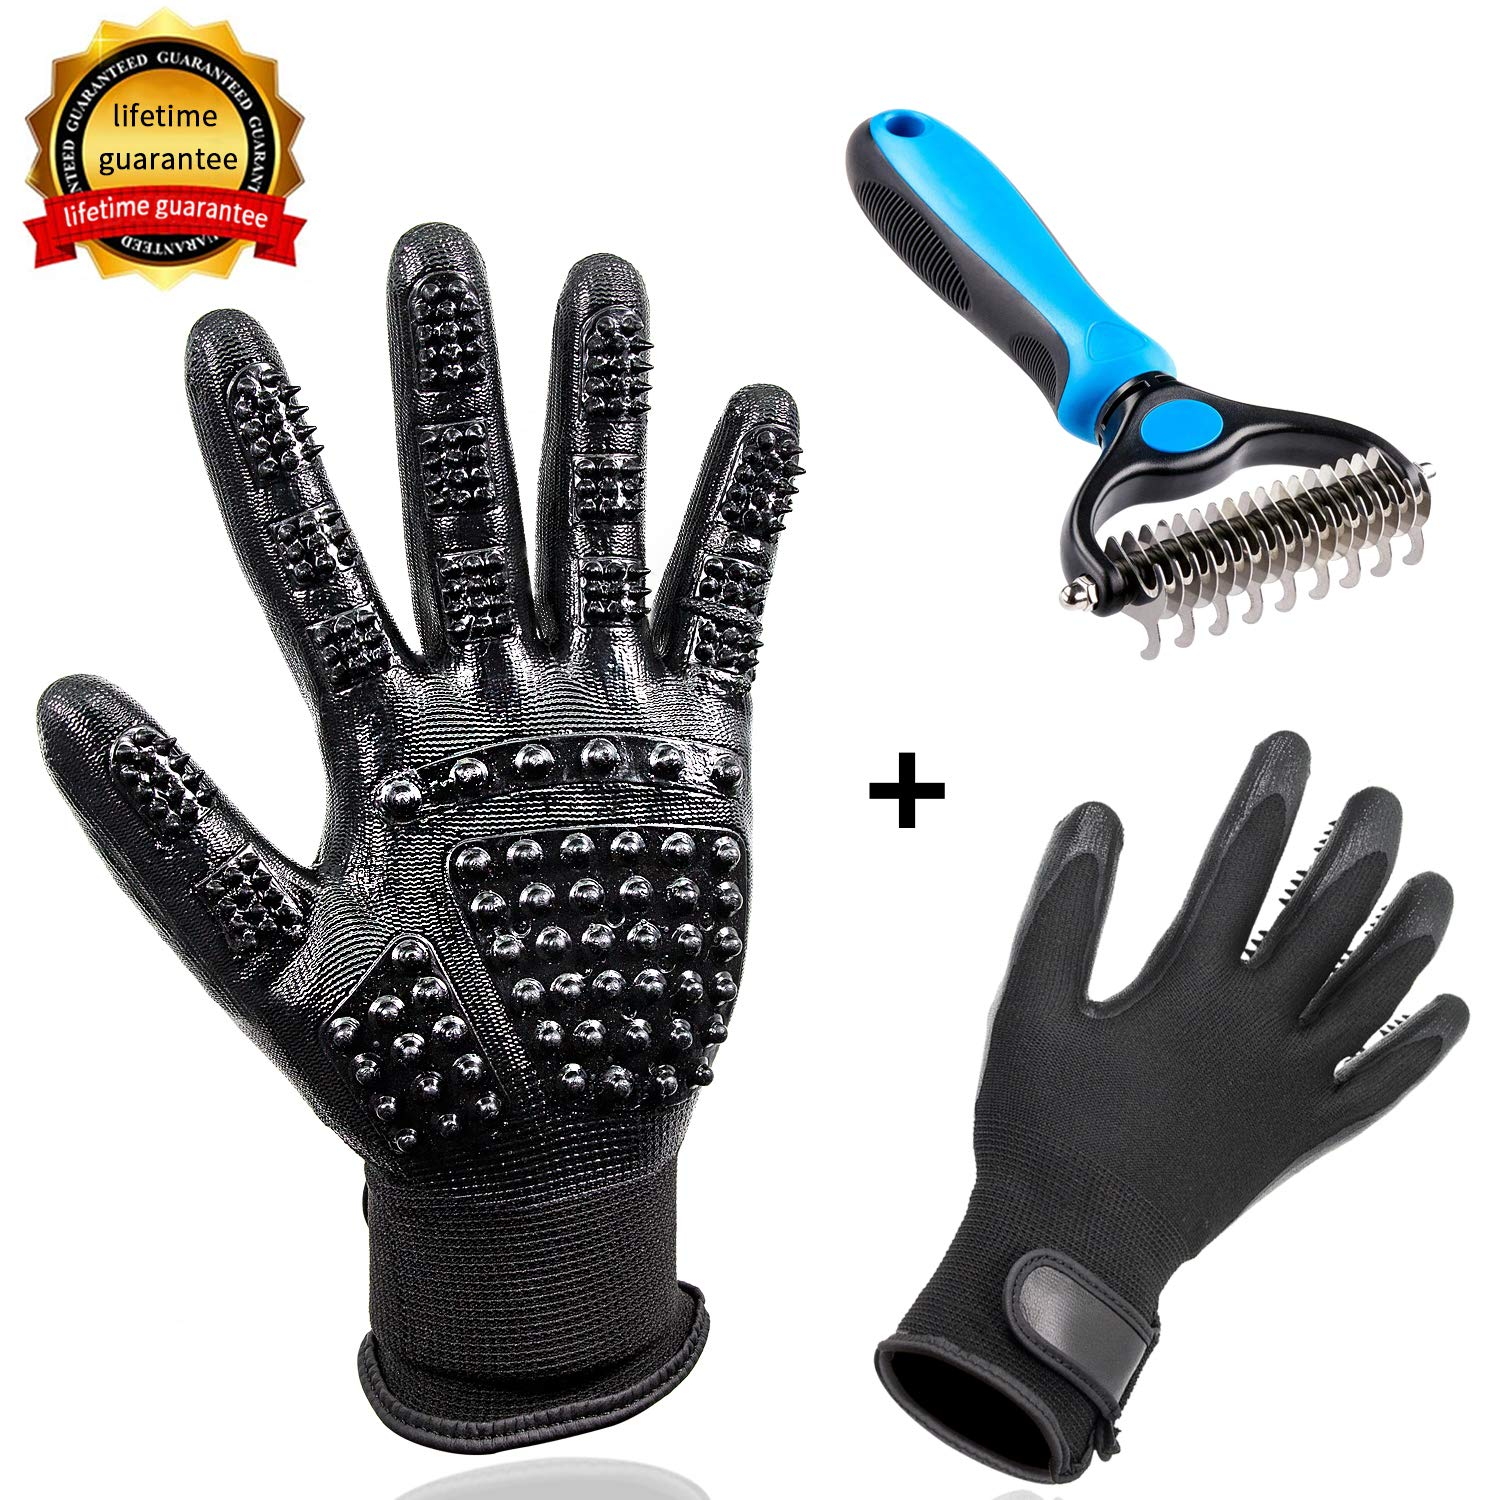 HENPET Pet Grooming Tool Dematting Comb/Grooming Glove Set, 2 Sided Undercoat Grooming Rake Gentle De-Shedding Brush for Dogs Cats Horses with Long Short Fur, Efficient Pet Hair Remover by HENPET (Image #1)